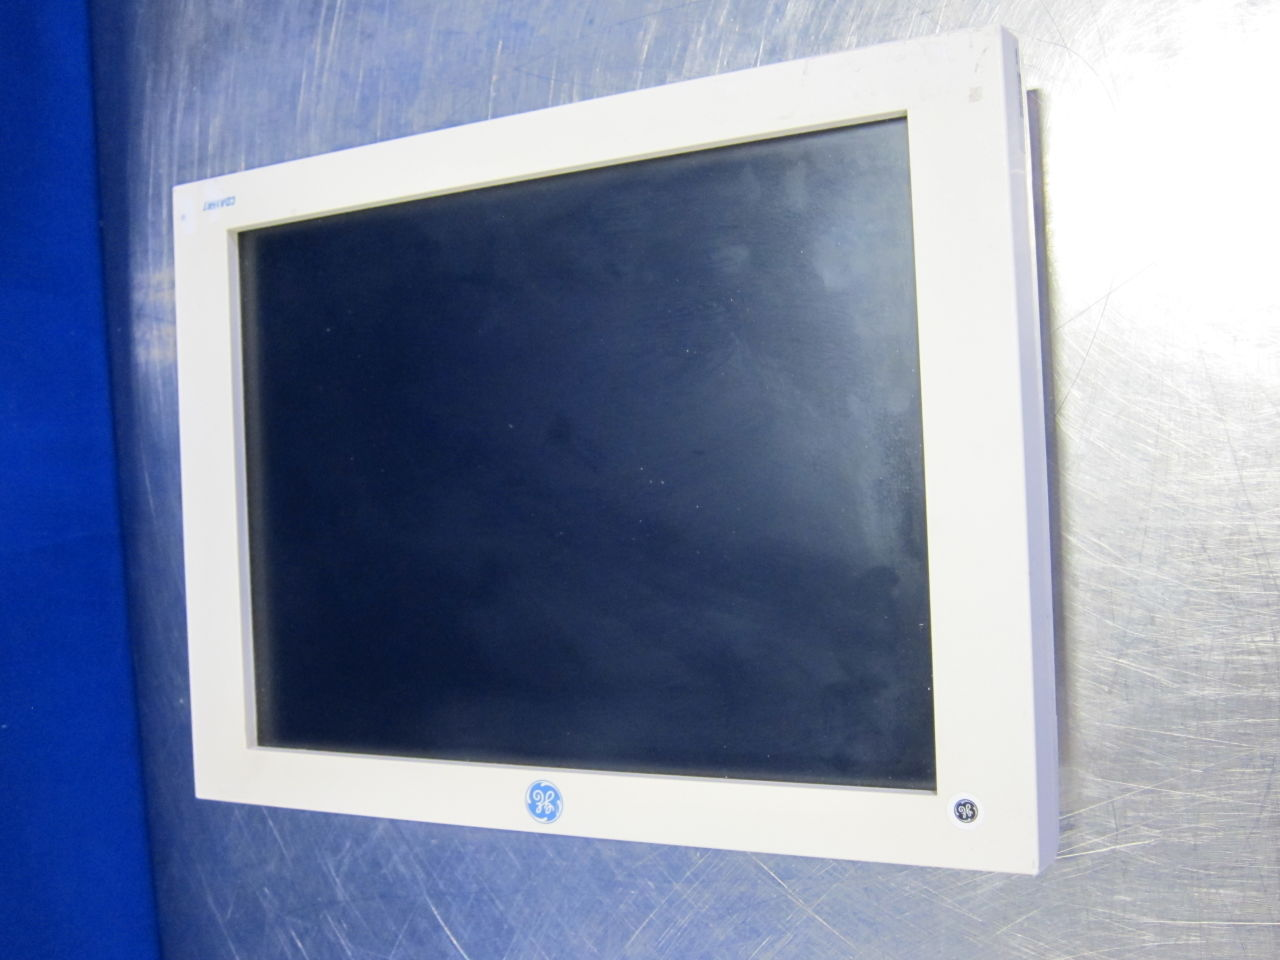 GE CDL1556A Display Monitor